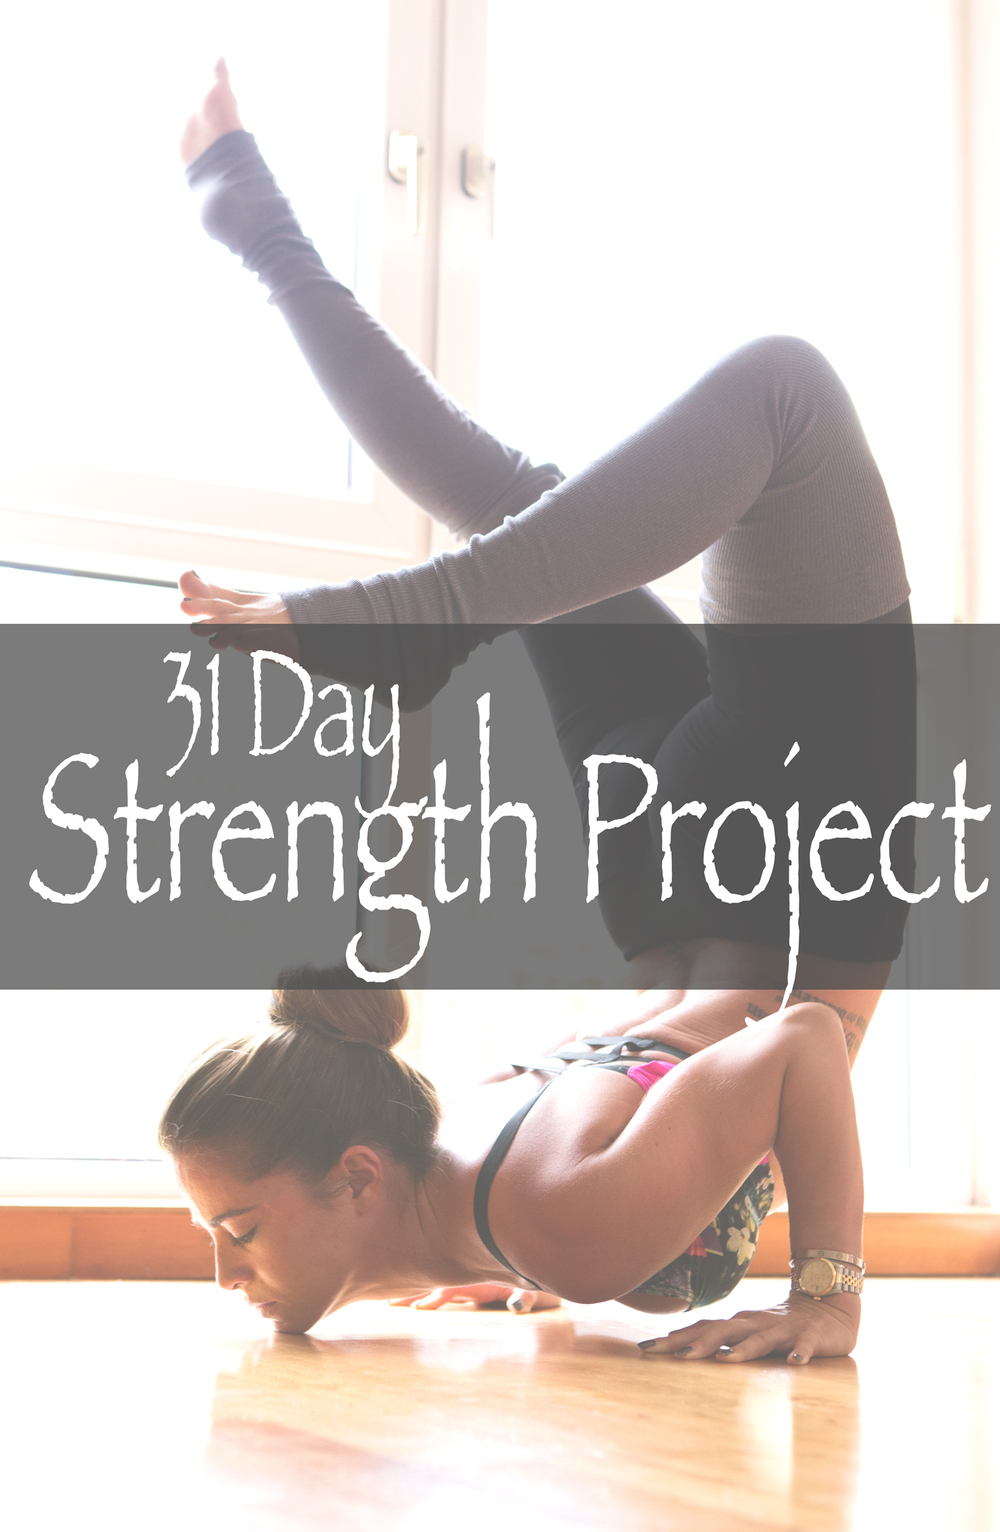 Pin it and join in on our 31 day yoga for strength project and watch your practice grow.  Wearing:  Onzie bra ,  Alo pants .